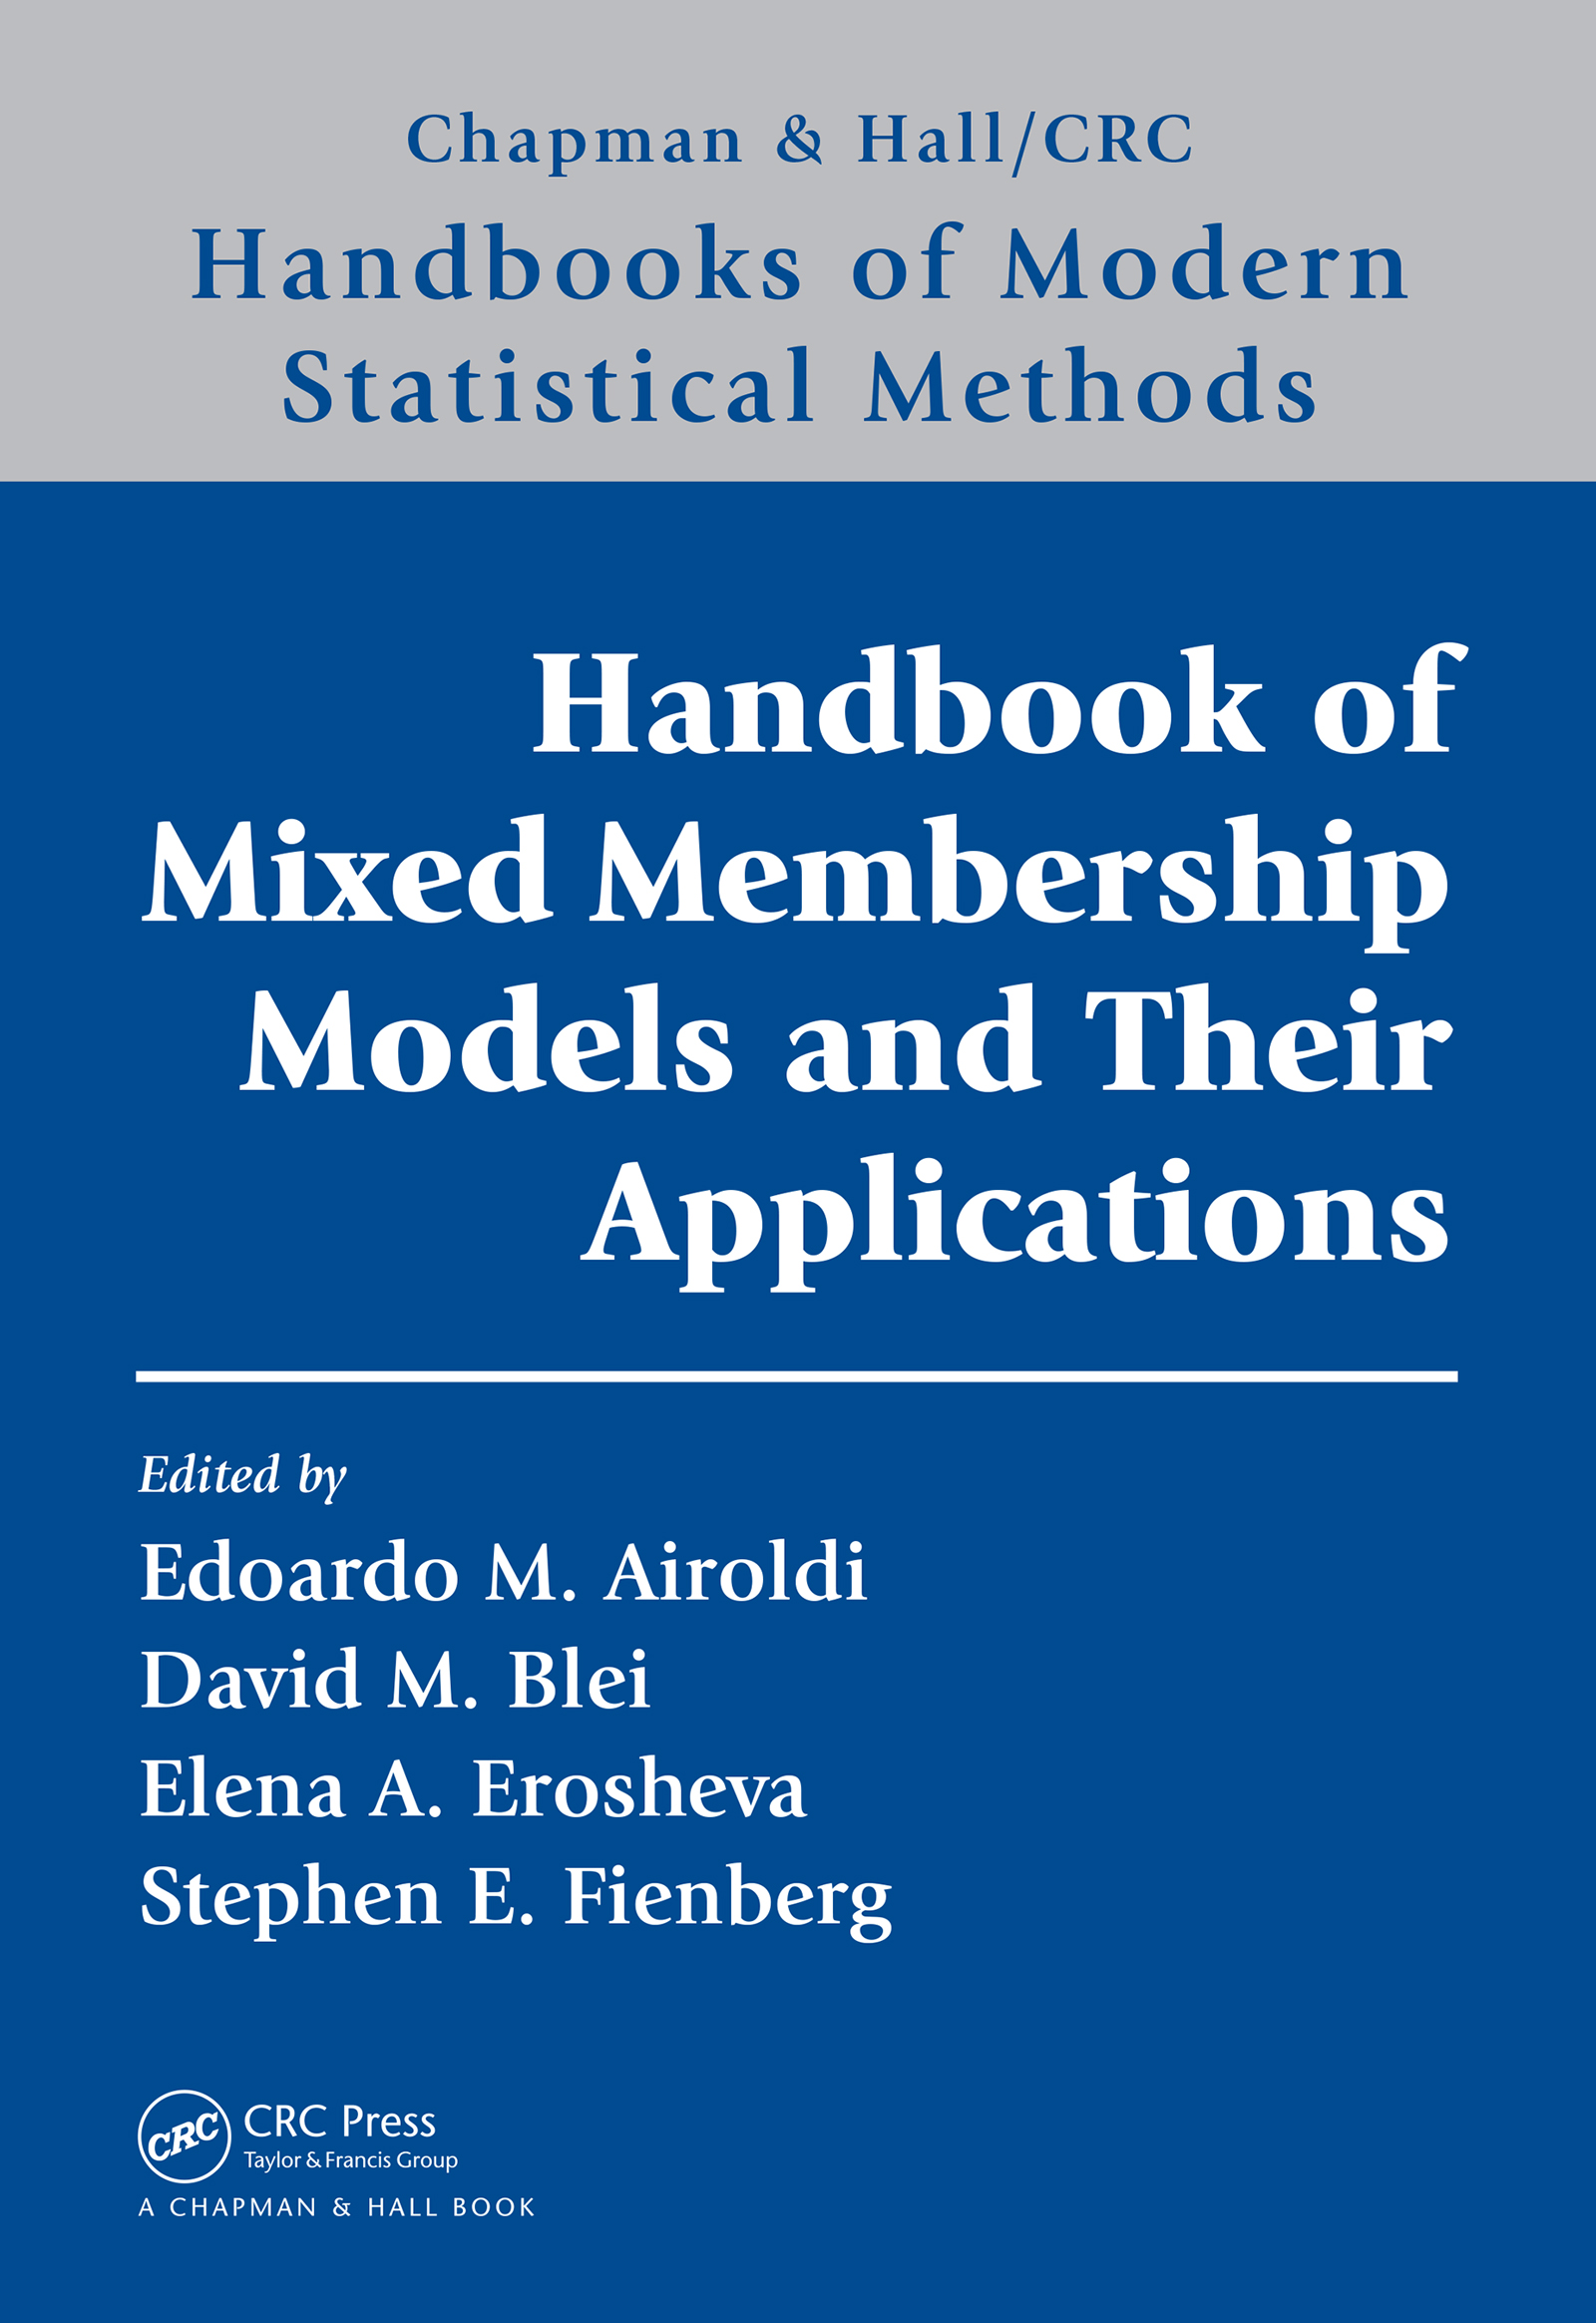 Introduction to Mixed Membership Models and Methods